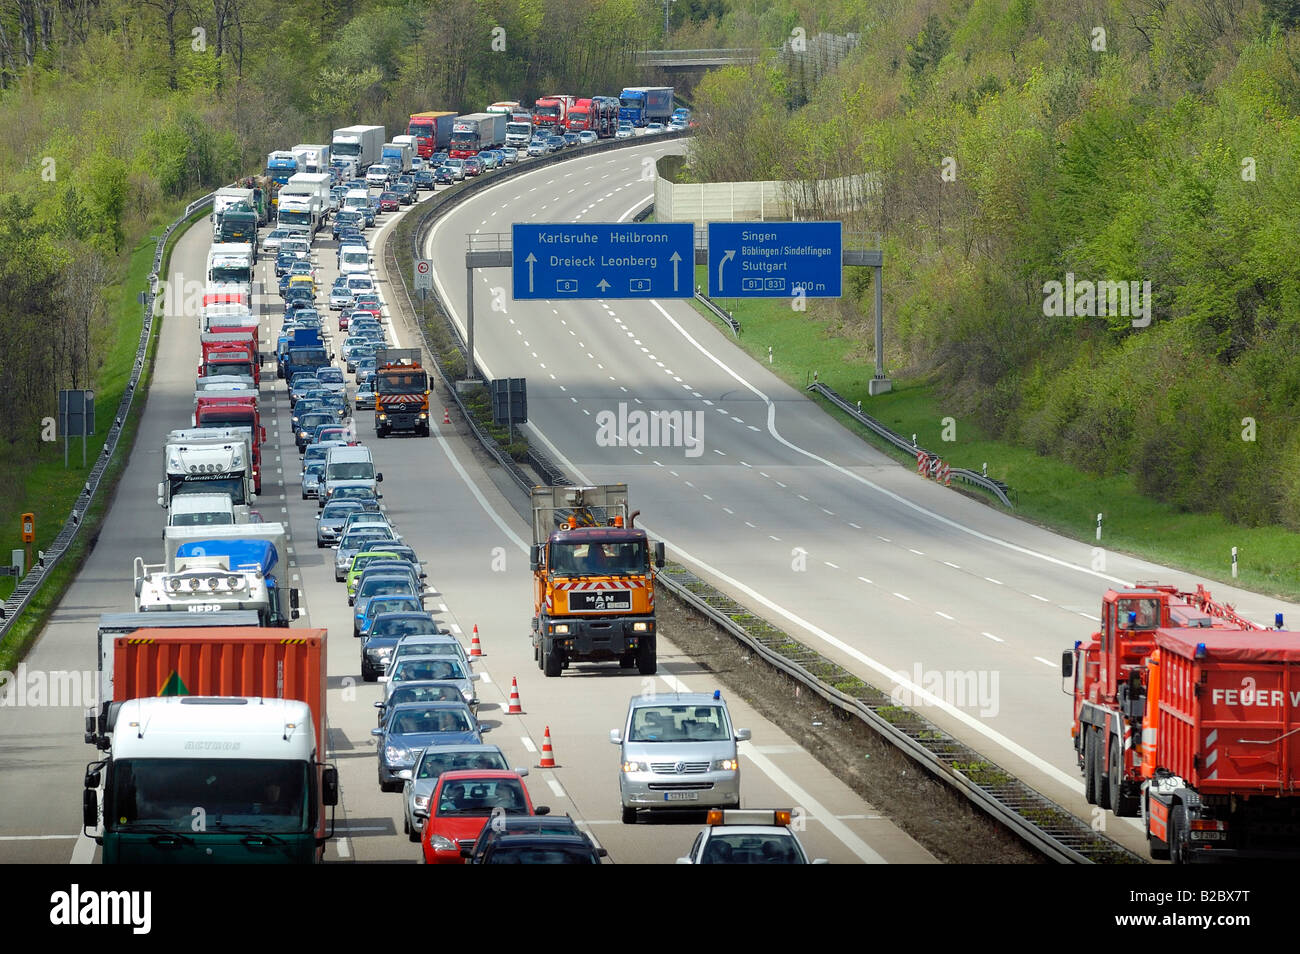 Traffic jam on the opposite carriageway after a major lorry accident on the A8 Motorway, in the direction of the city of Karlsr Stock Photo